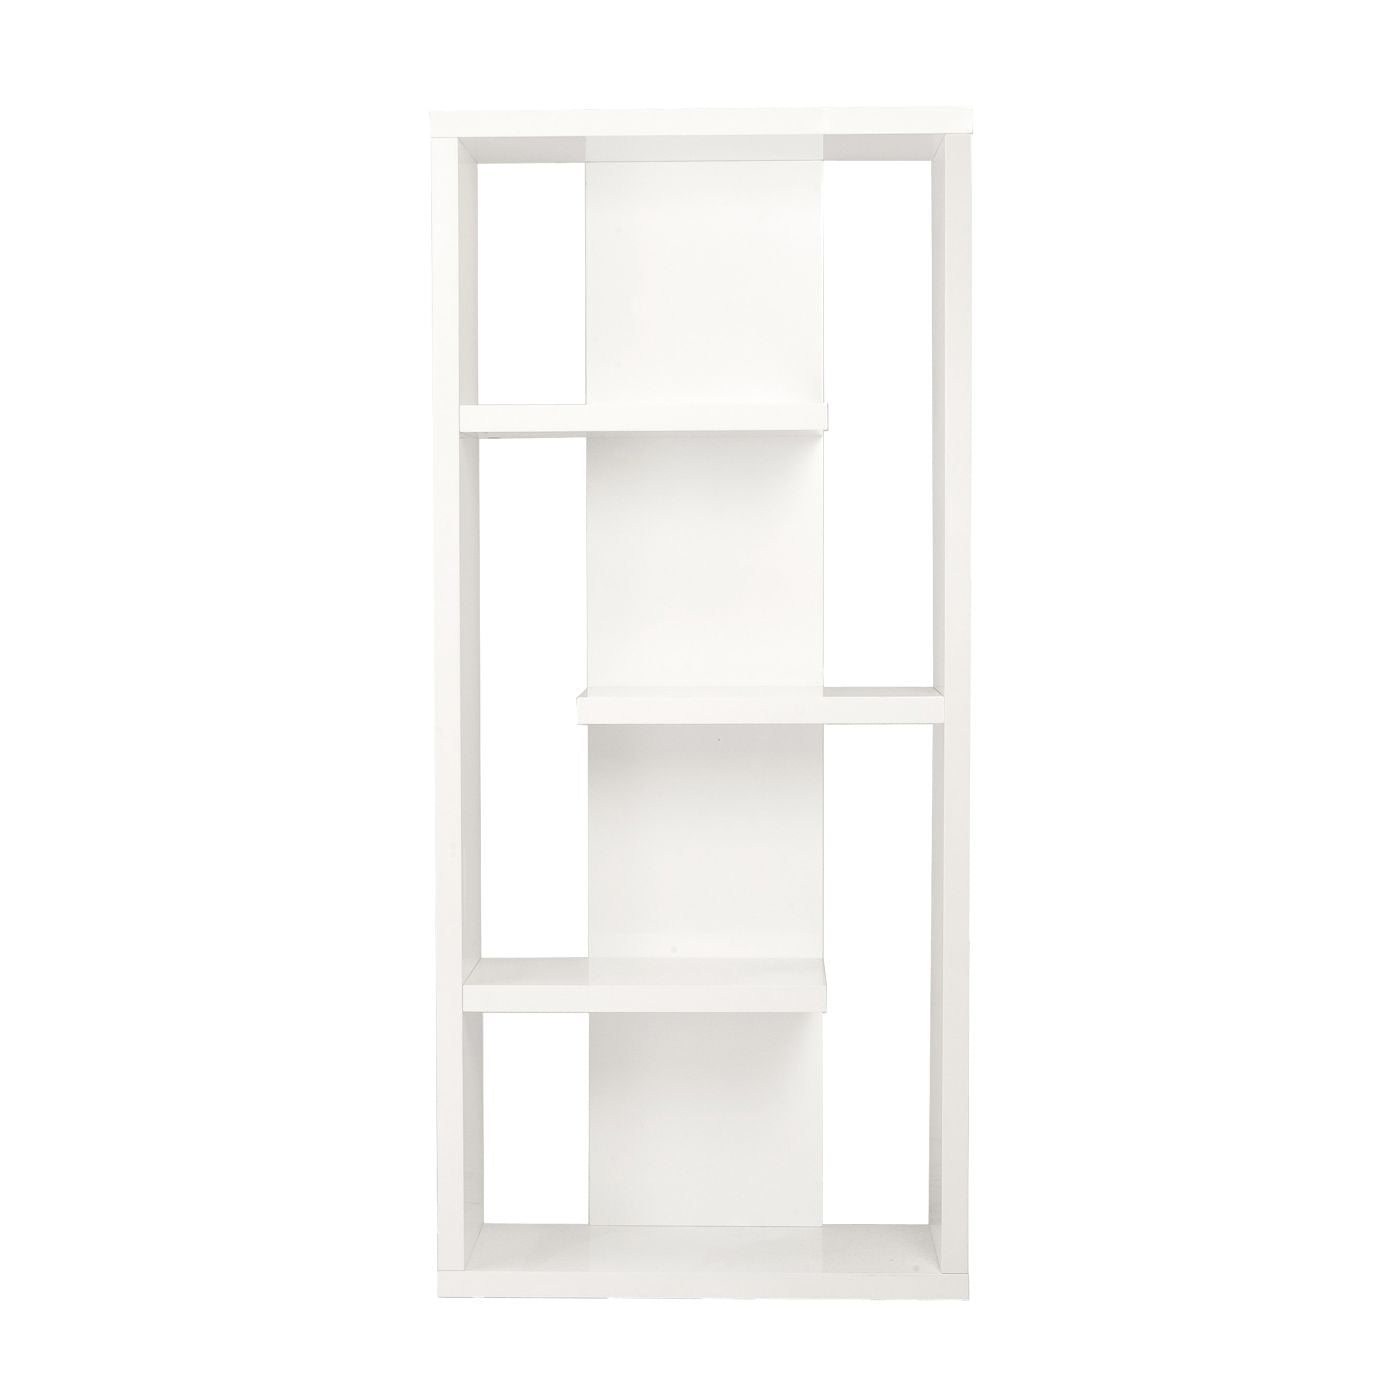 huge discount cce05 ead3e Robyn Shelving Unit in White